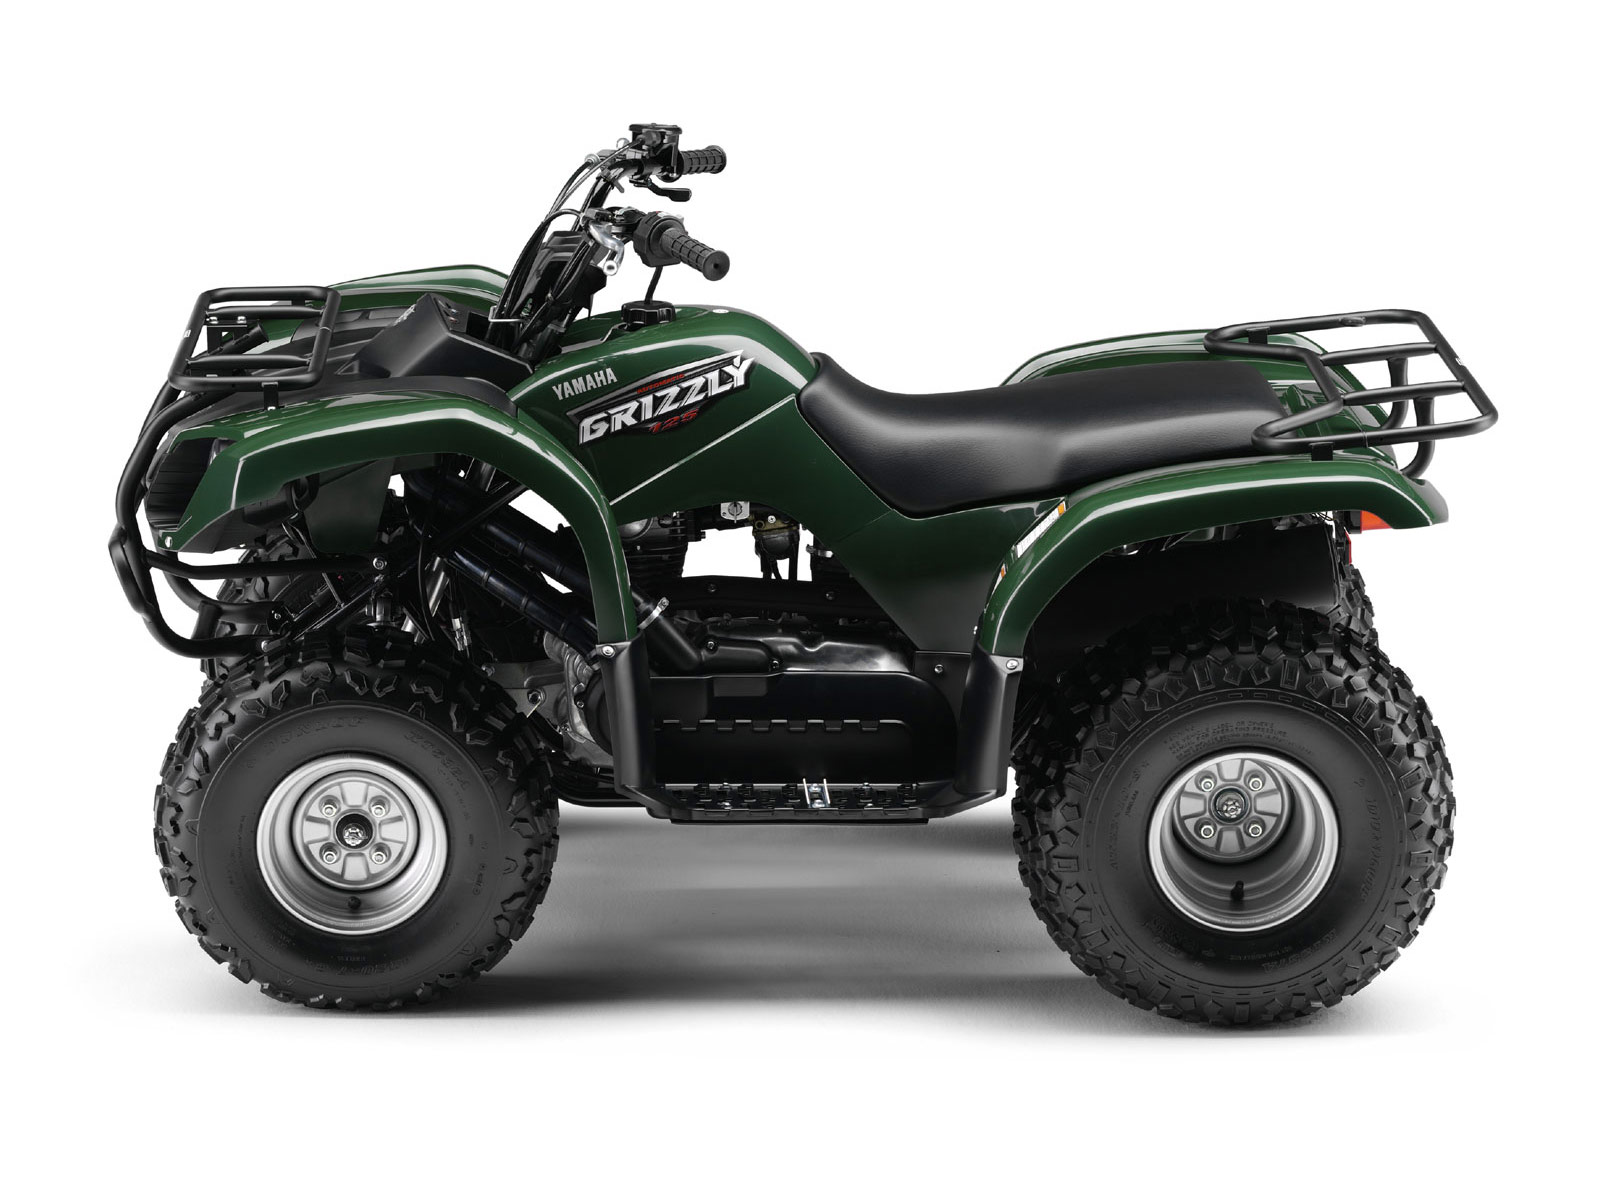 2005 yamaha grizzly 125 for sale in fulton ny wheel a way rh wheelawaymotorsports com 2000 Yamaha Grizzly 600 Wiring Diagram 2004 Yamaha 660 Wiring Diagram PDF